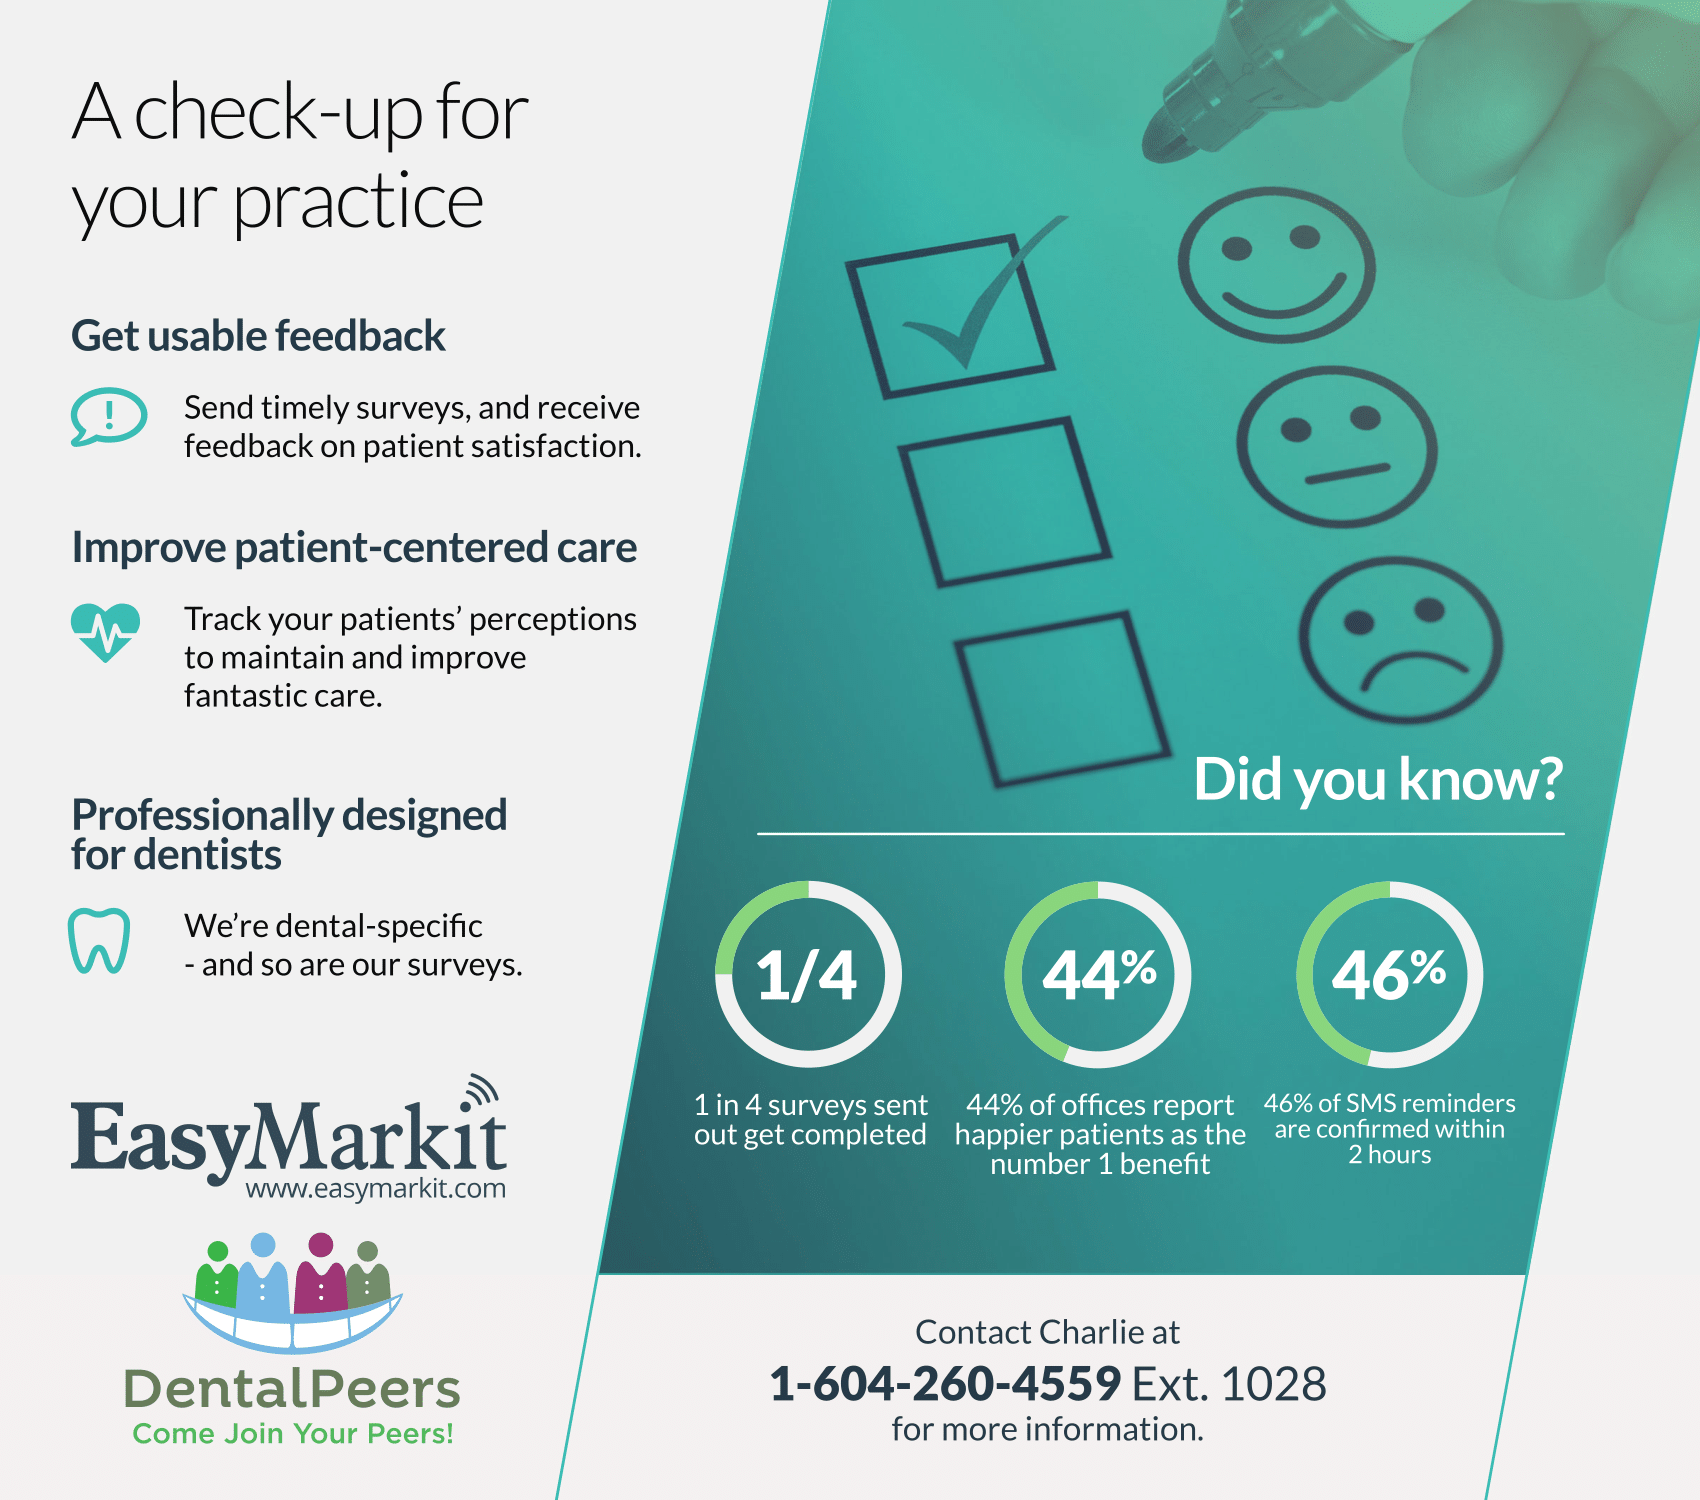 DentalPeers_EasyMarkit_A_Check_Up_For_Your_Practice-1.png